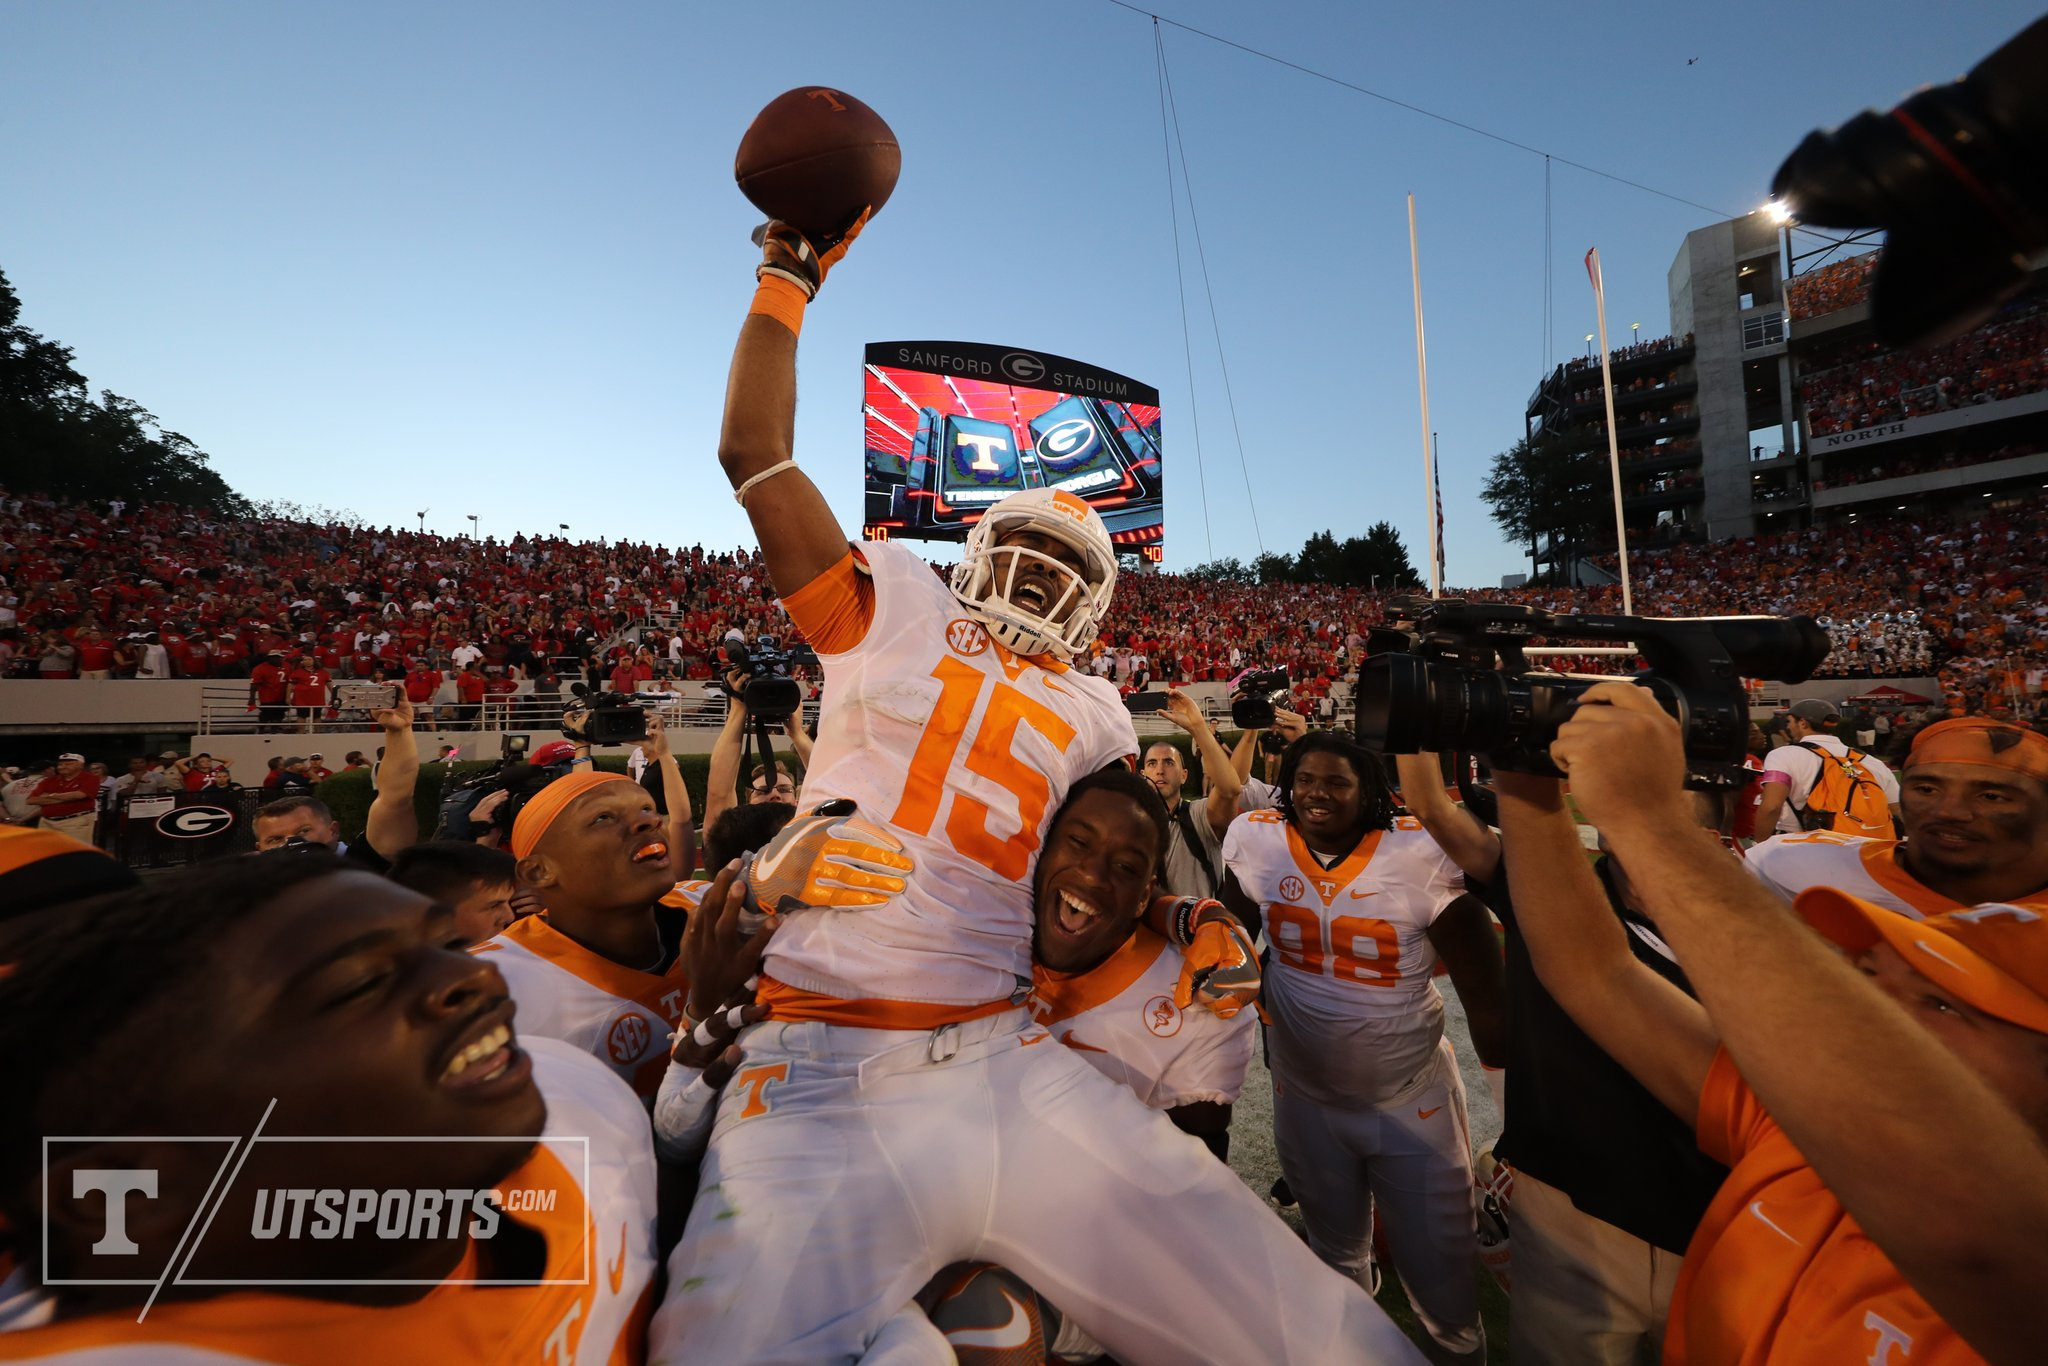 Tennessee vence Georgia com Hail Mary